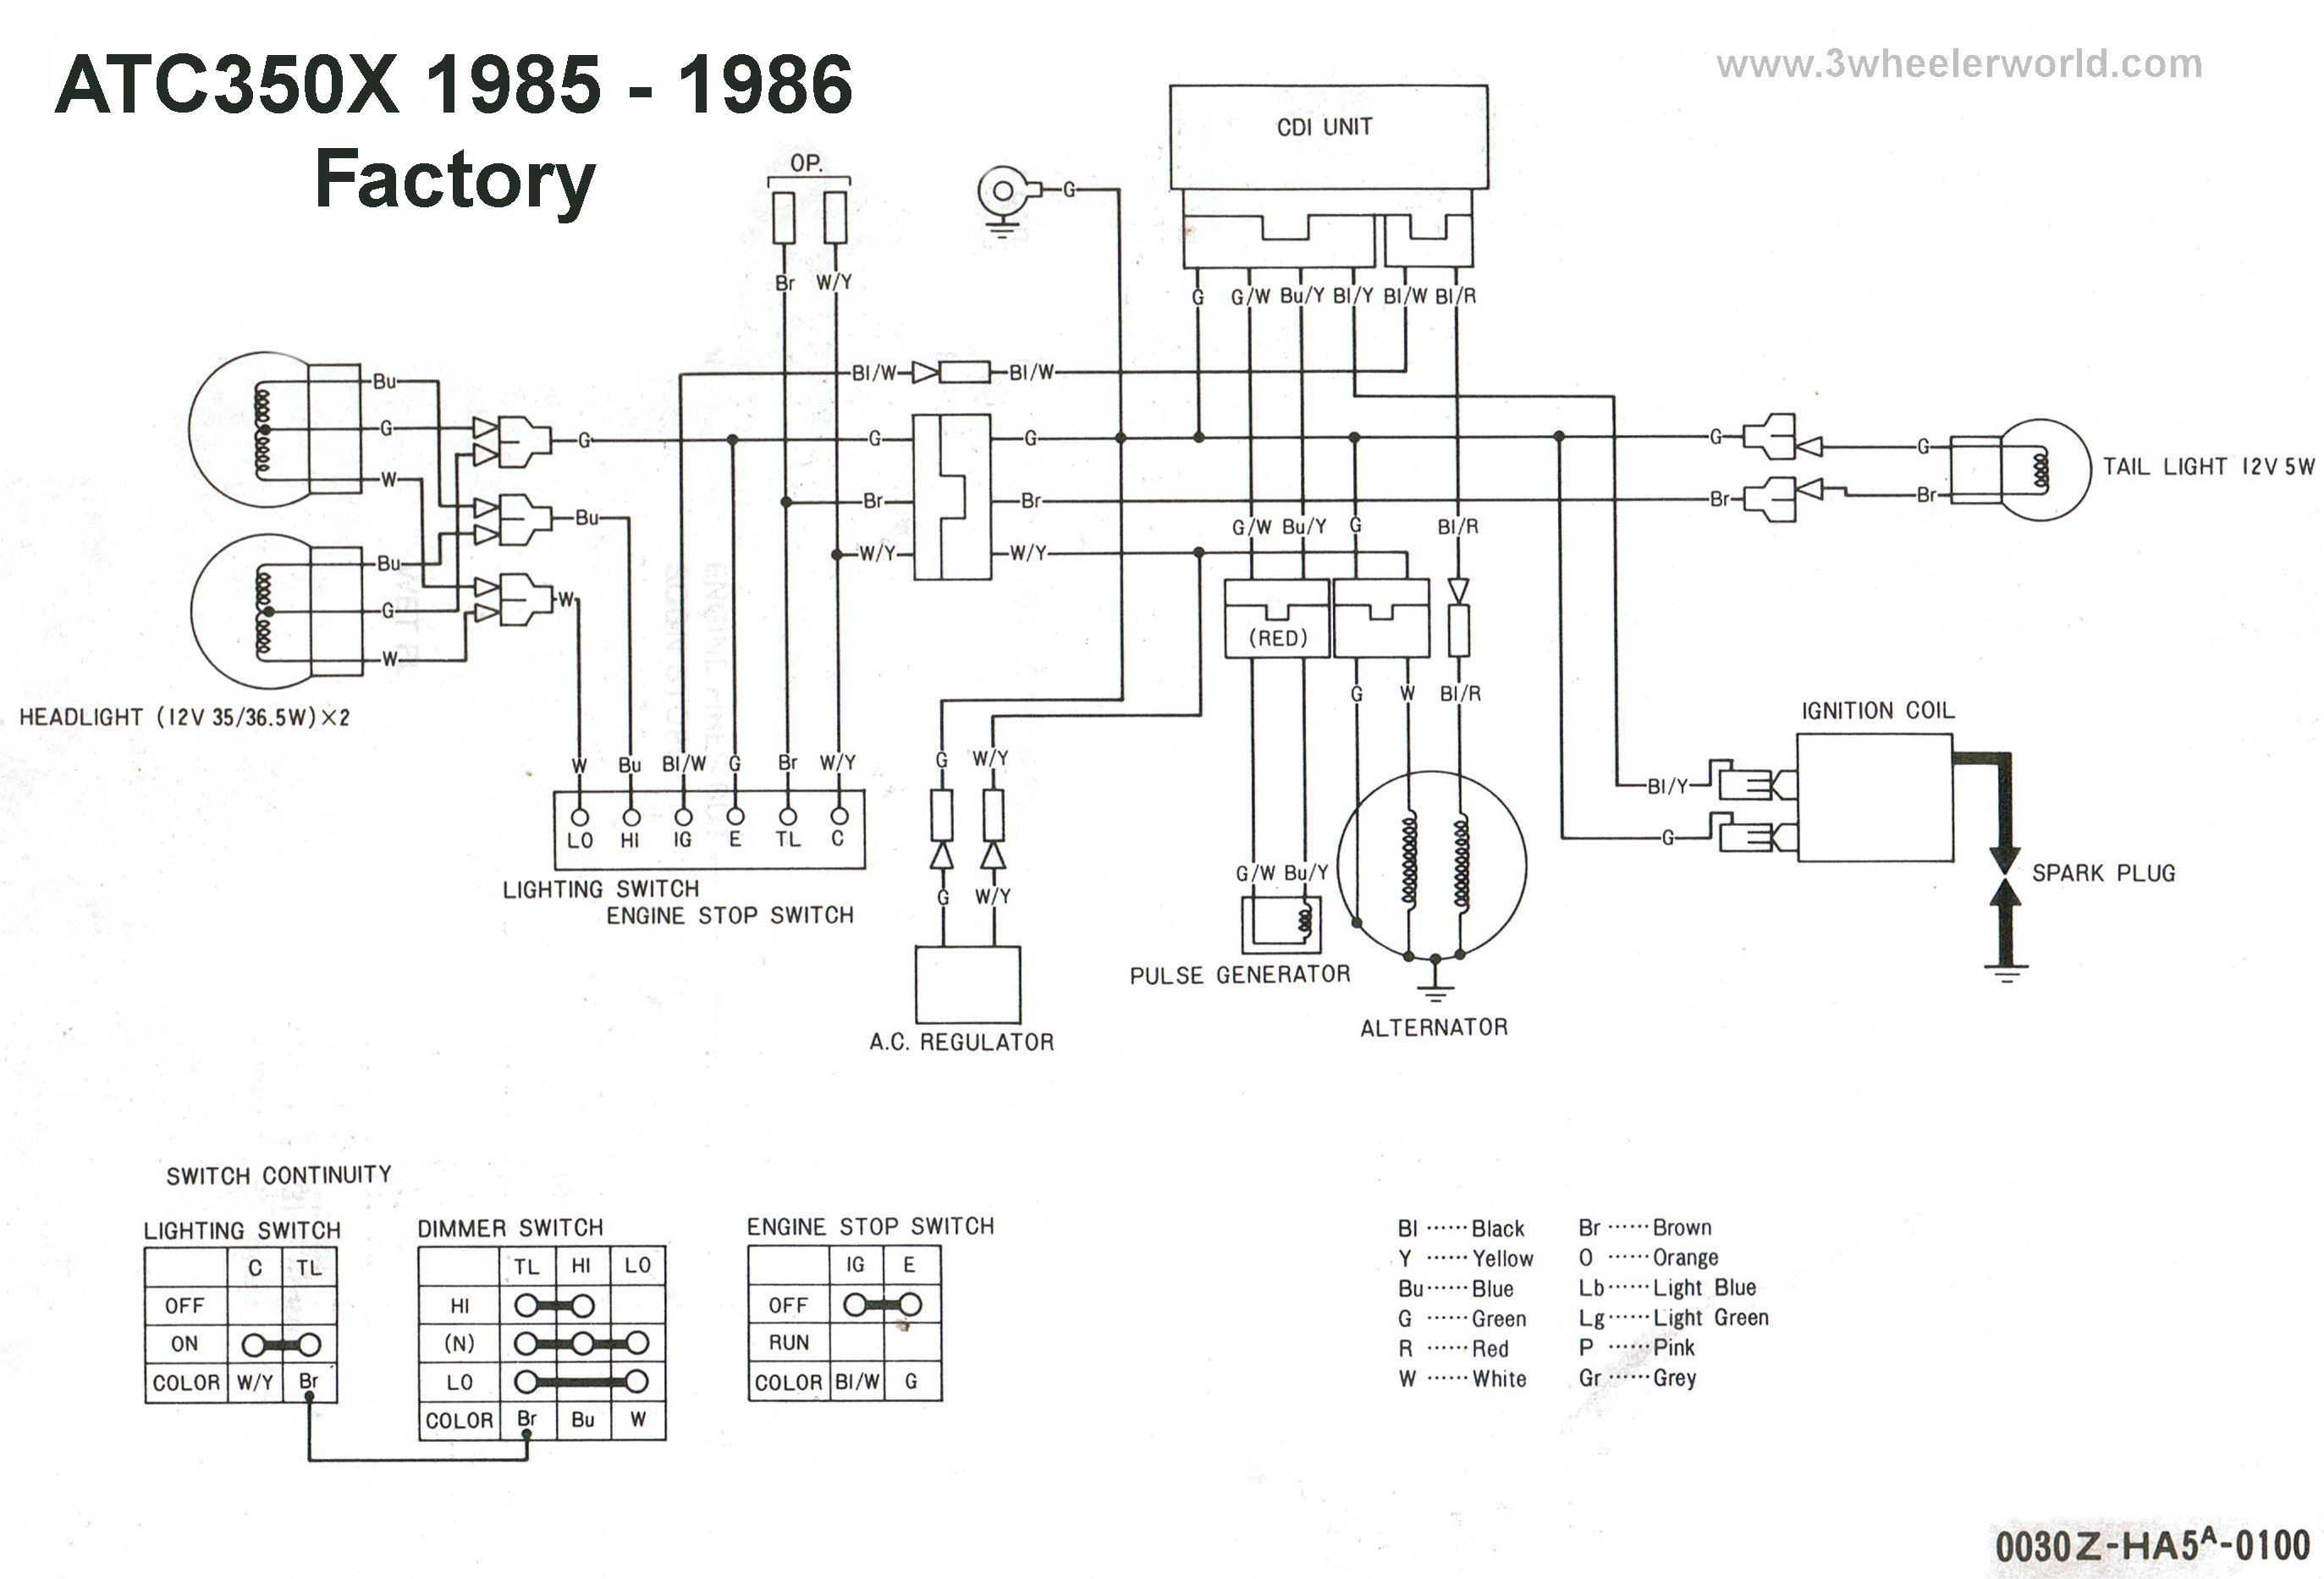 02 Rancher Es Wiring Diagram List Of Schematic Circuit Diagram \u2022 Ford Wiring  Diagrams Trx300 Wiring Diagram